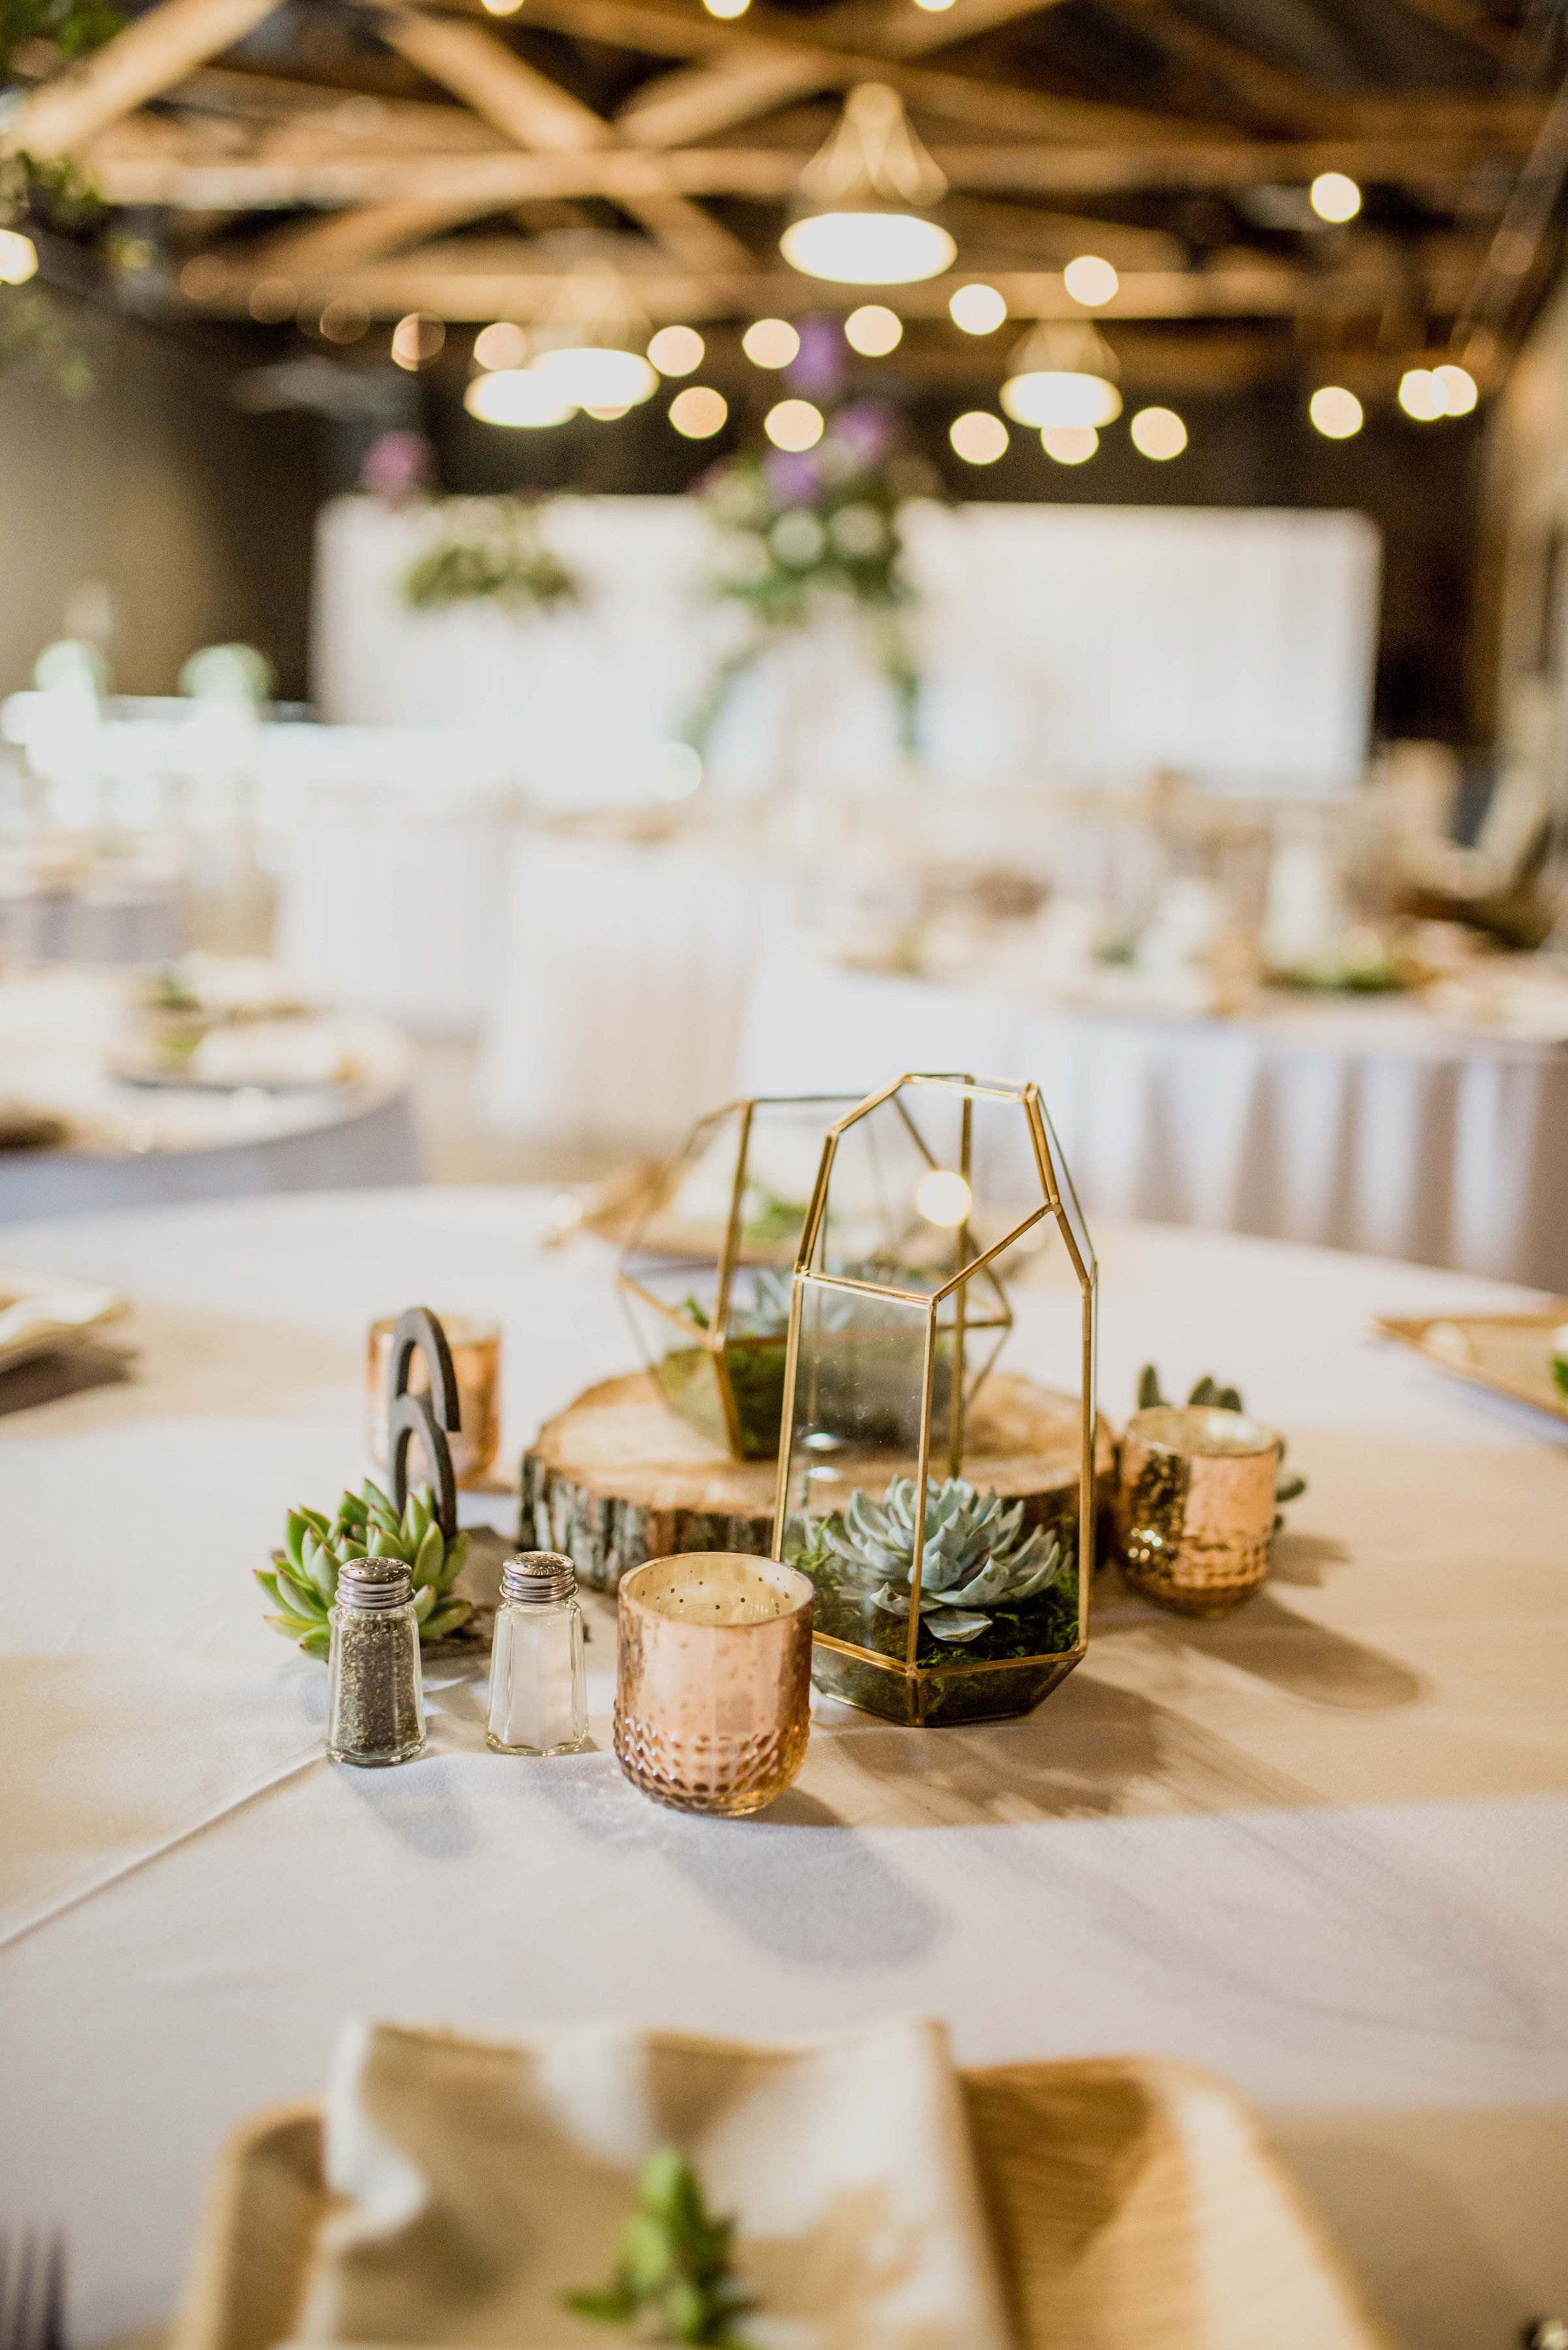 Sommer Wedding At The Brightside Dayton Ohio In 2020 Event Venues Music Event Event